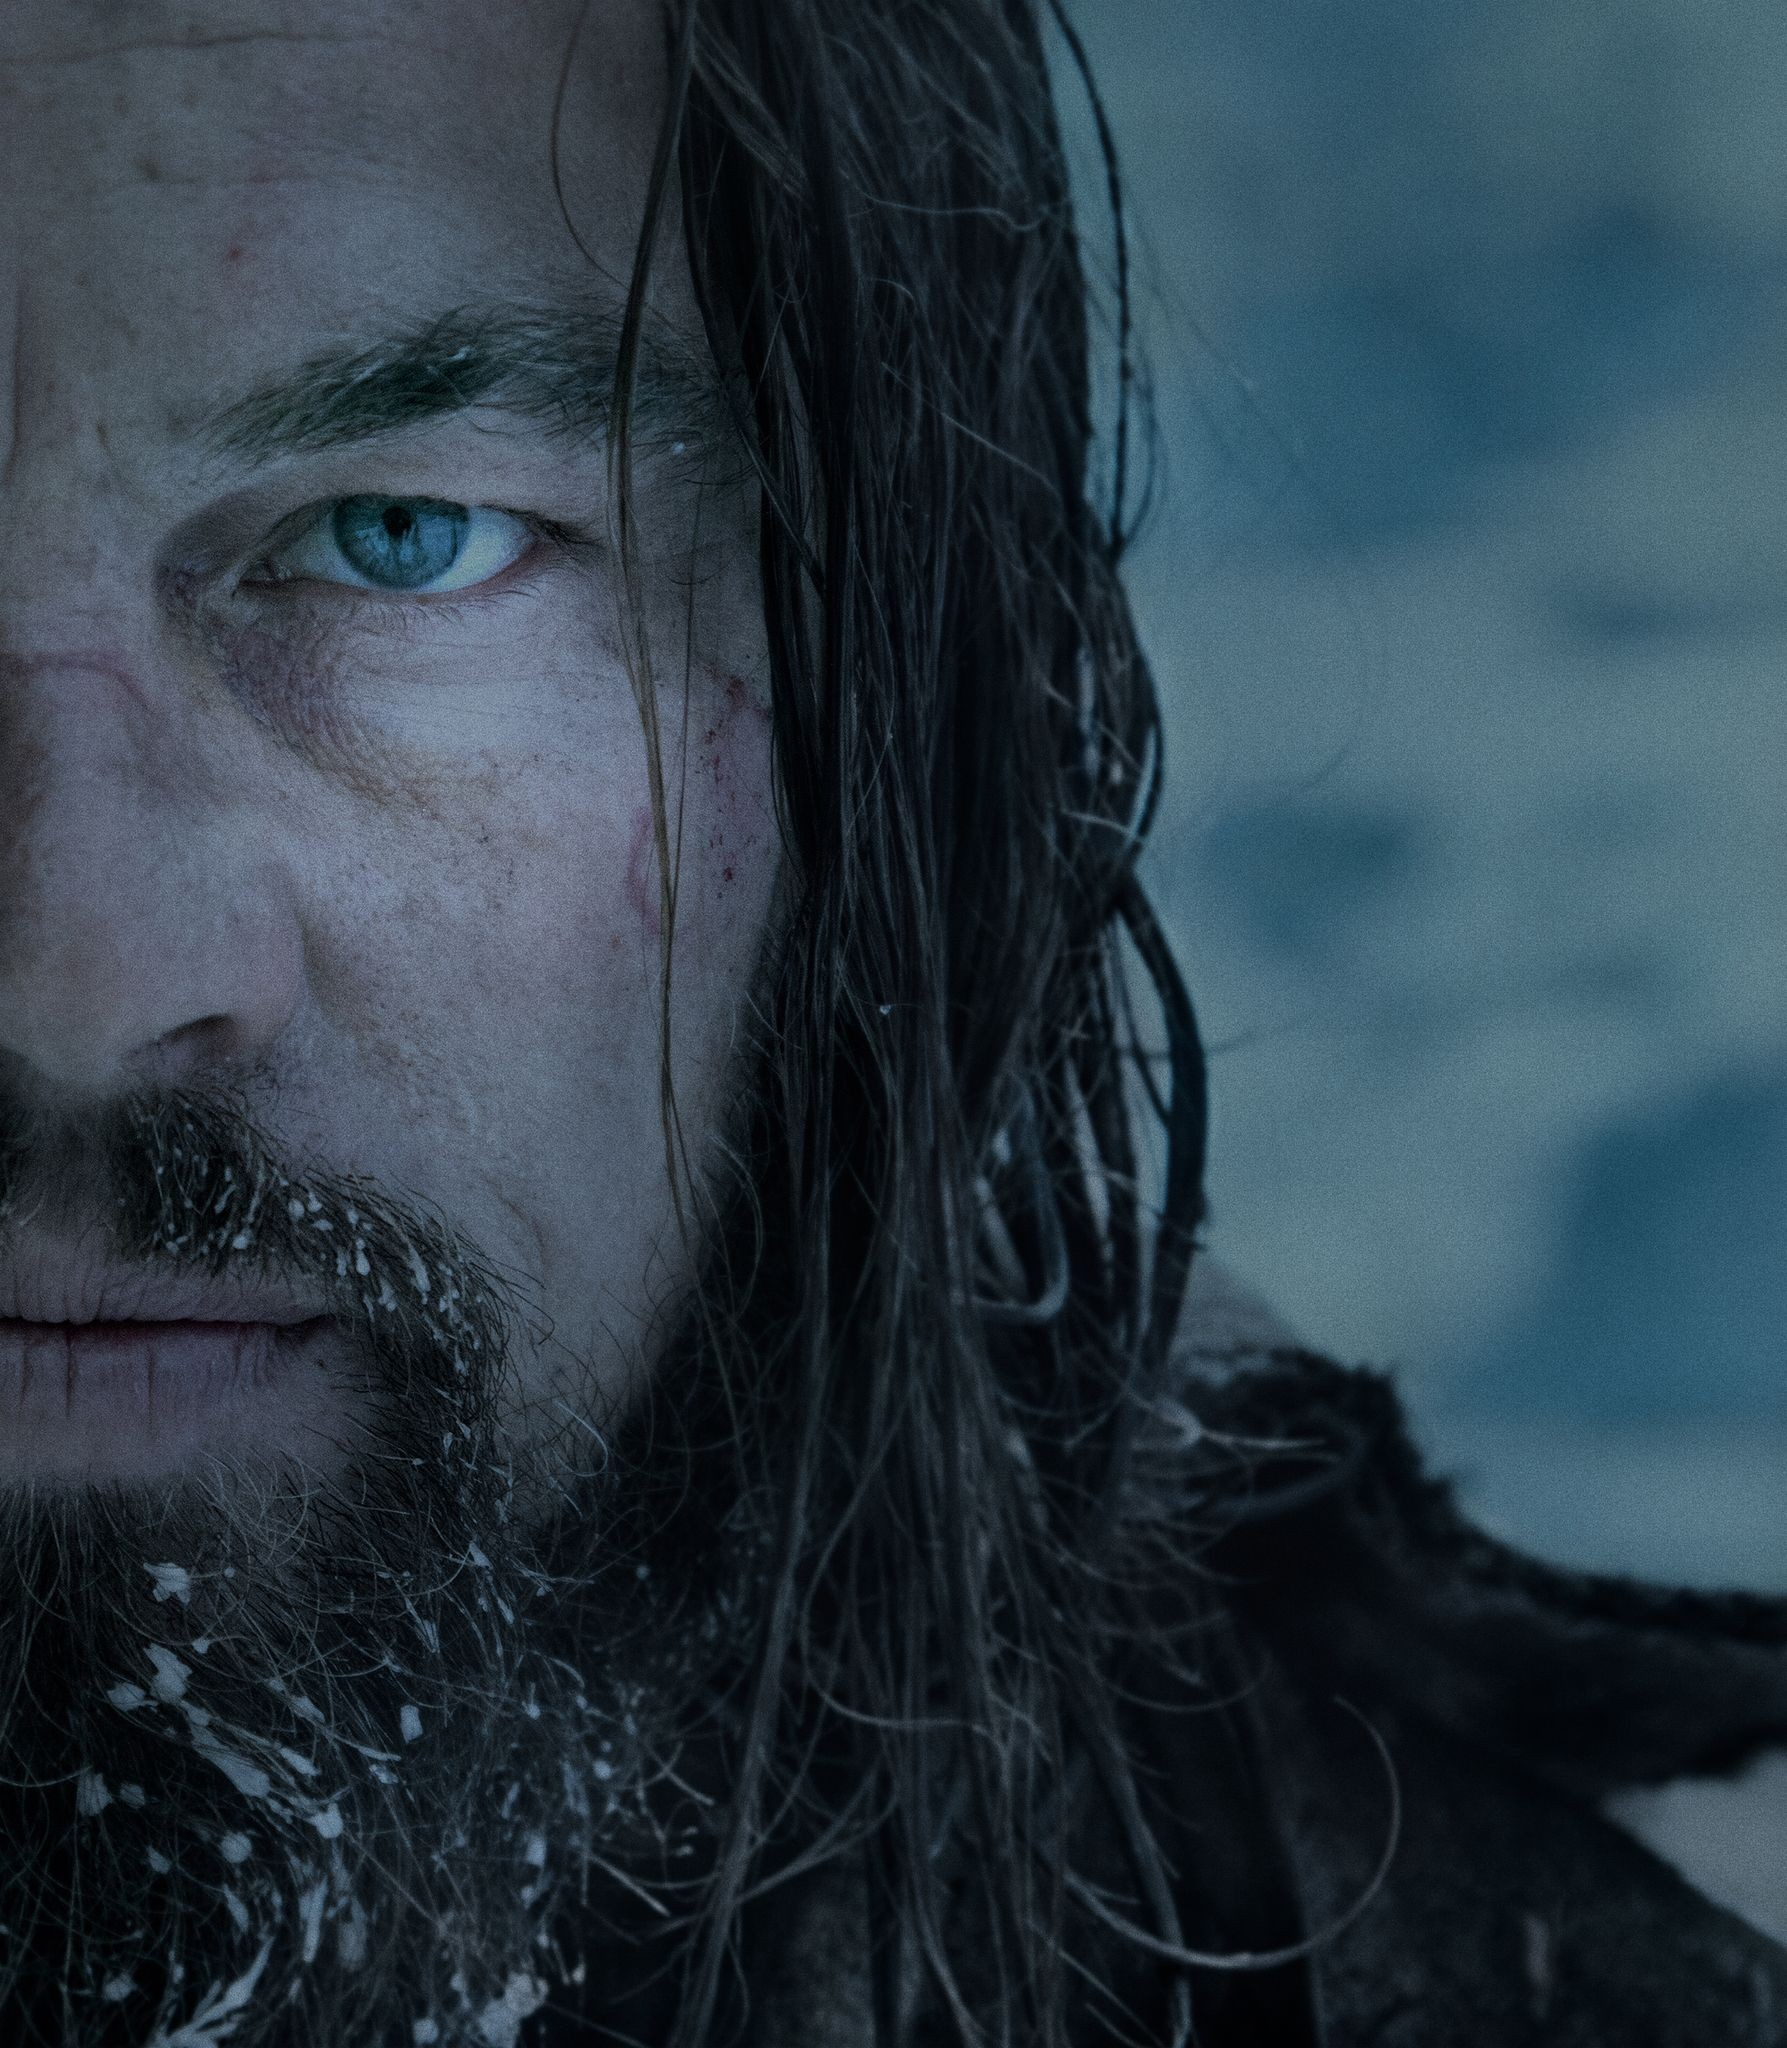 the-revenant-leonardo-dicaprio-as-hugh-glass-the-revenant-39221871-1787-2048